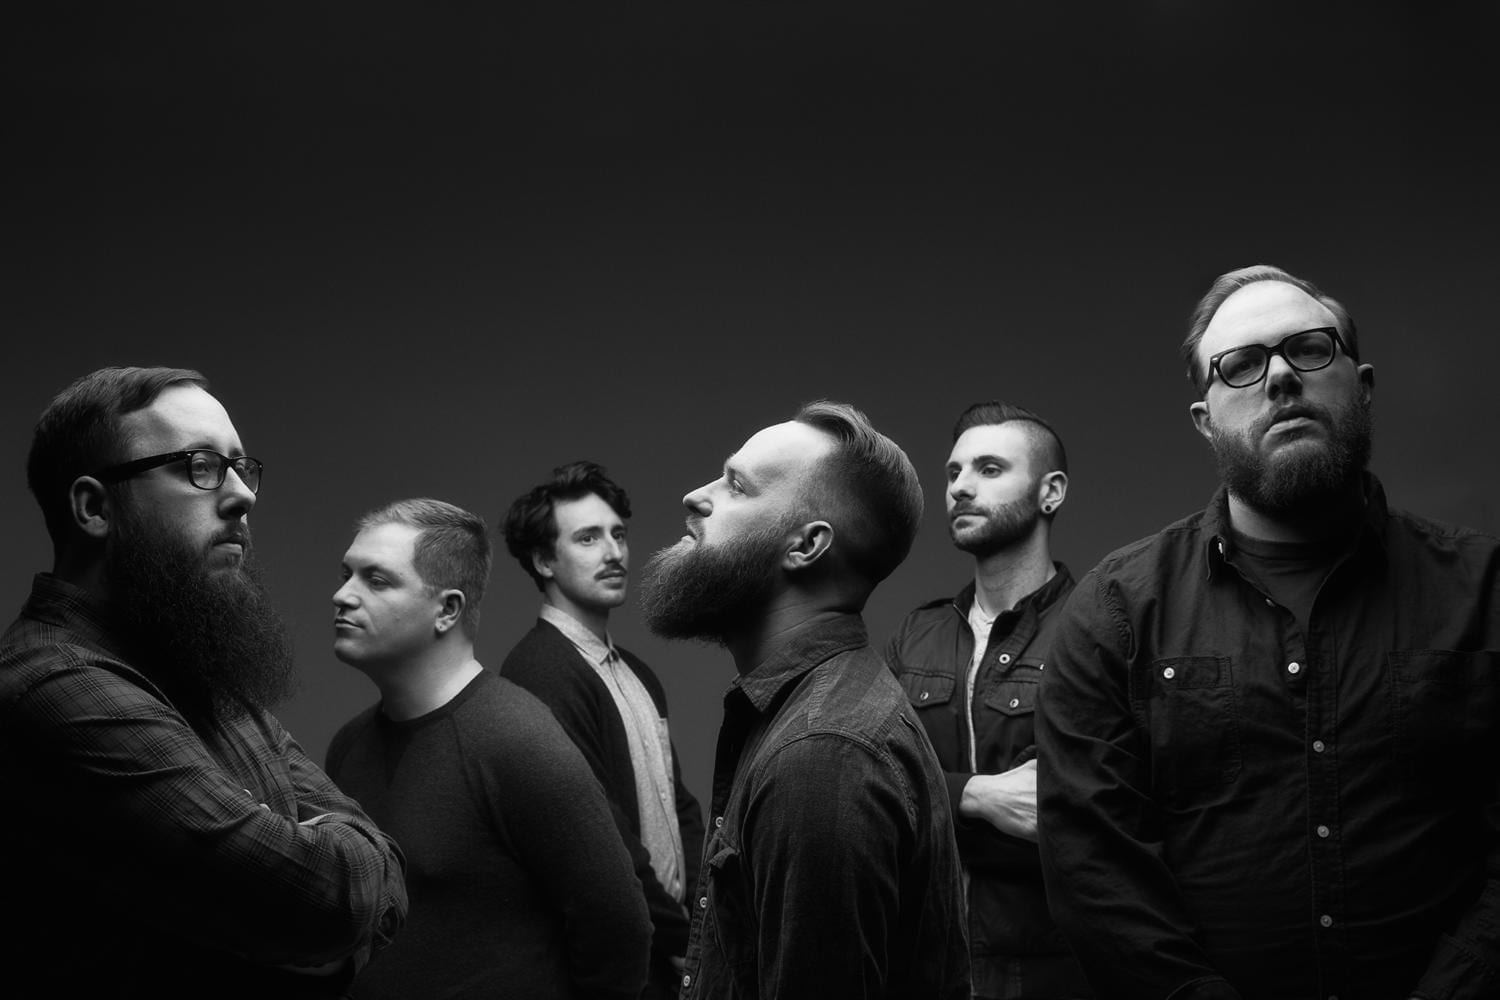 Live Review: The Wonder Years // Manchester Academy – Manchester